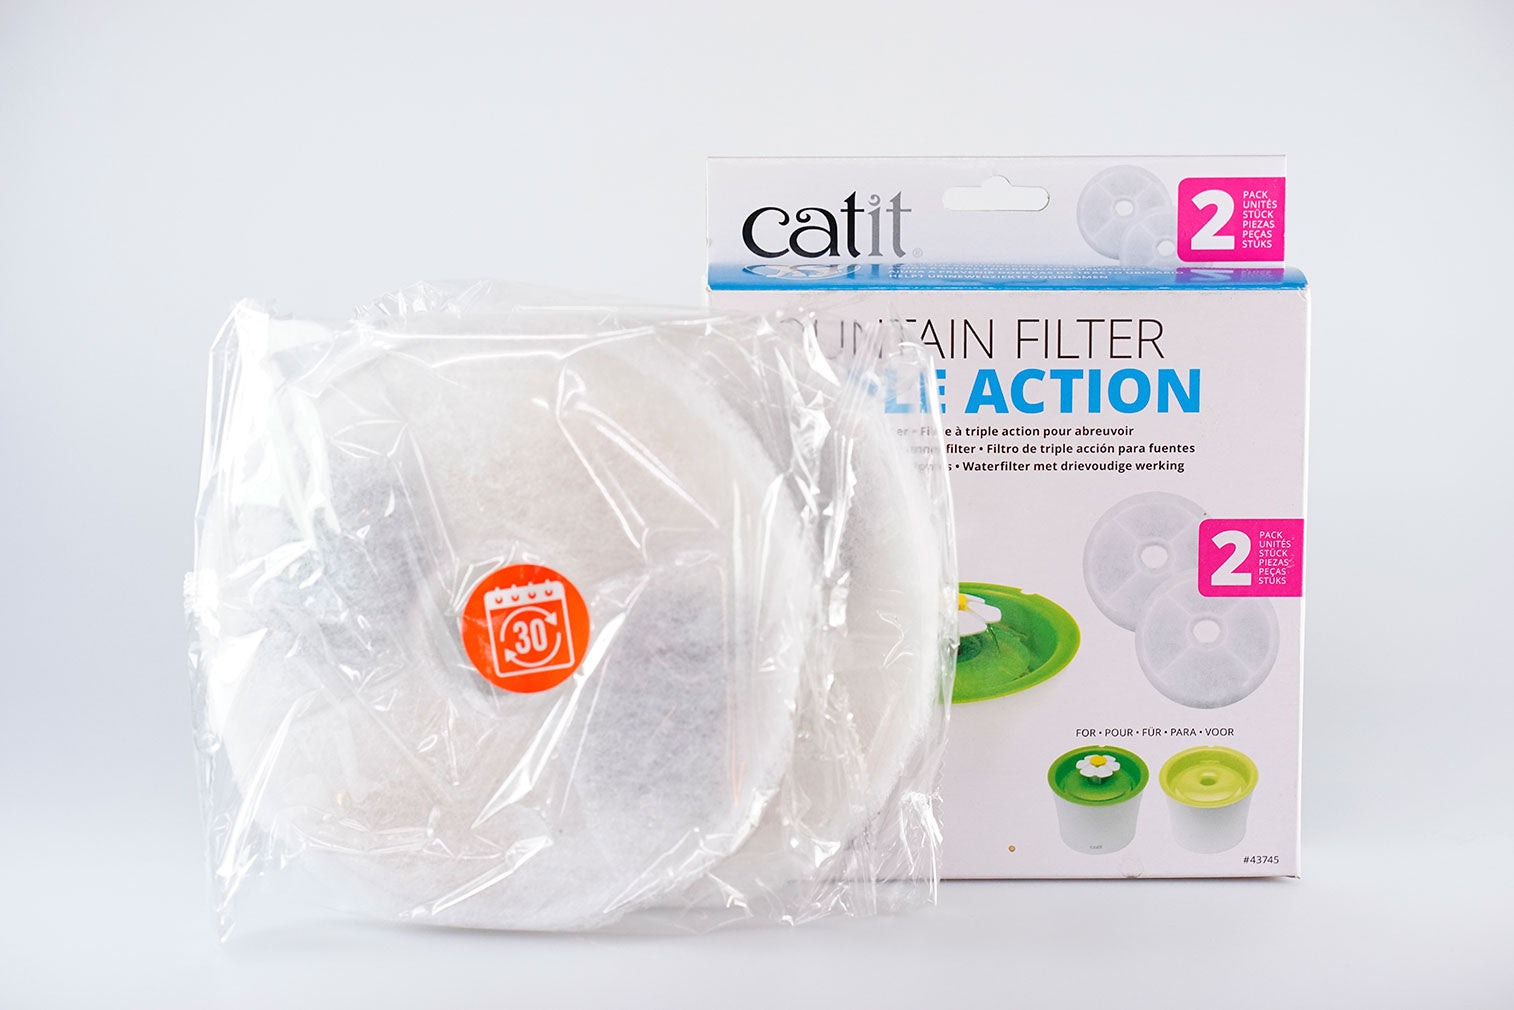 Catit Fountain Filter Triple Action - 2 pack #43745